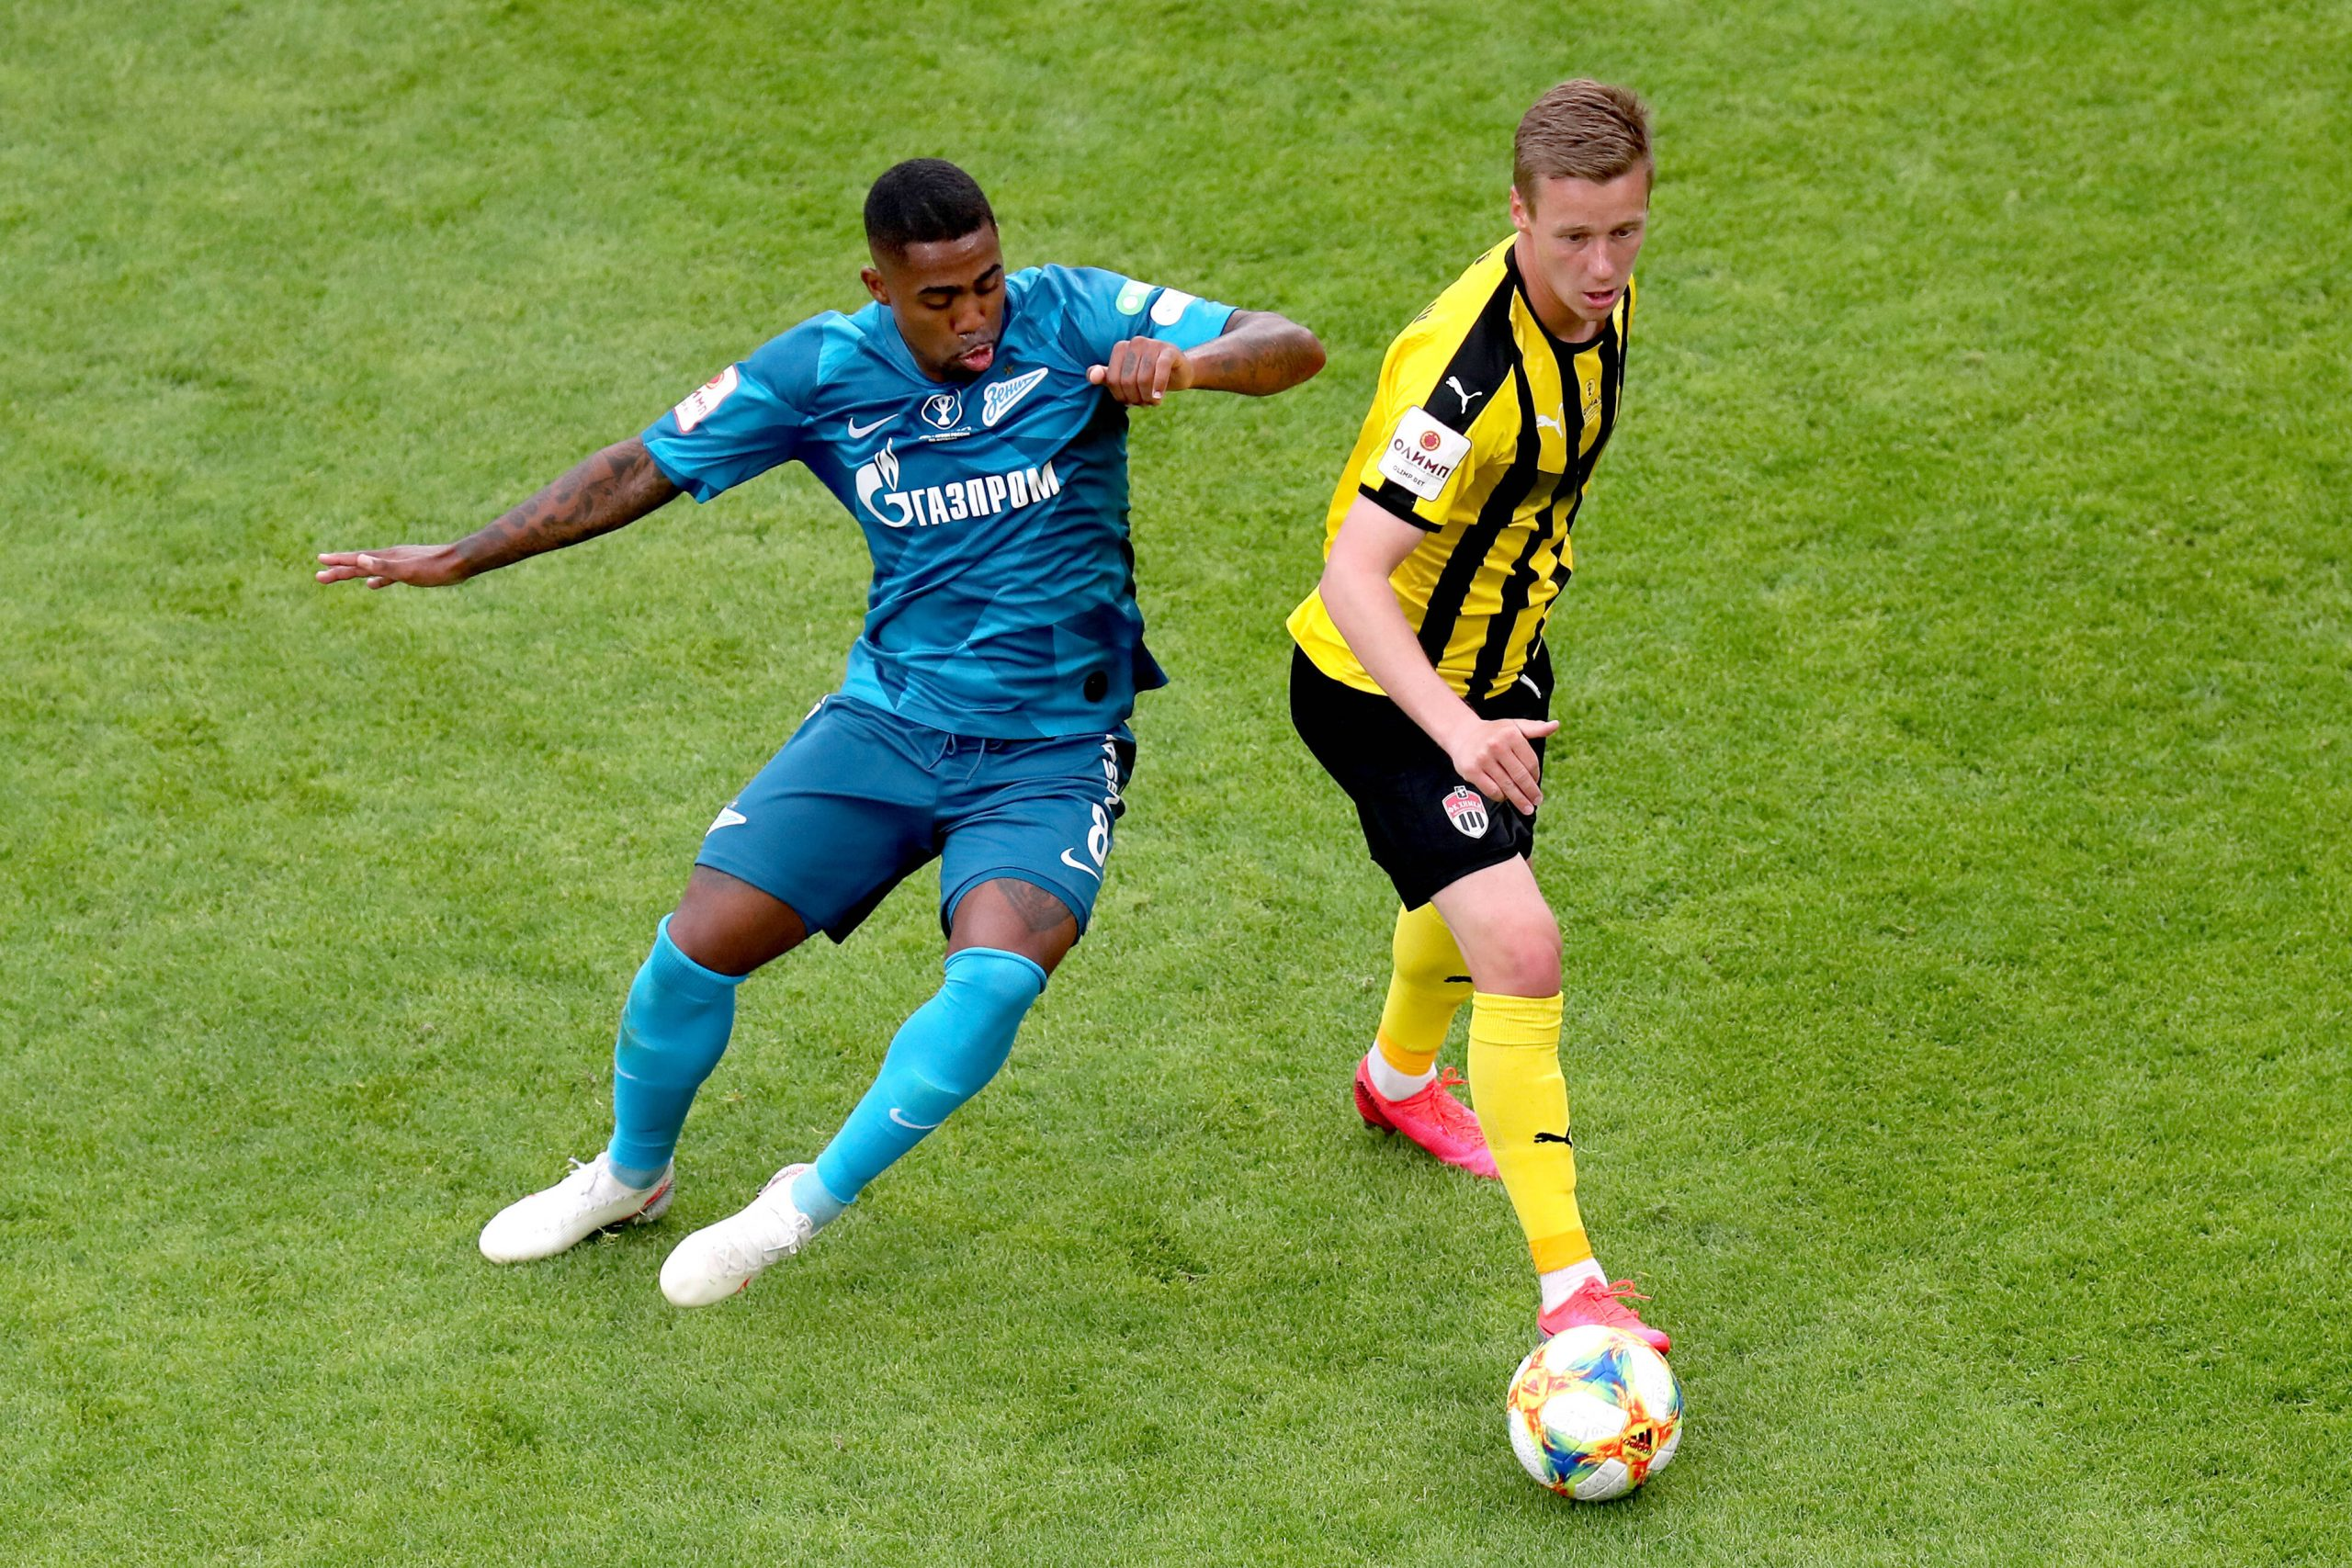 Zenit vs Khimki - YEKATERINBURG, RUSSIA - JULY 25, 2020: Zenit St Petersburg s Malcom L and FC Khimki s Maxim Martusevich are in action in their 2019/2020 Russian Cup final football match at Yekaterinburg Arena. Donat Sorokin/TASS PUBLICATIONxINxGERxAUTxONLY TS0E135D